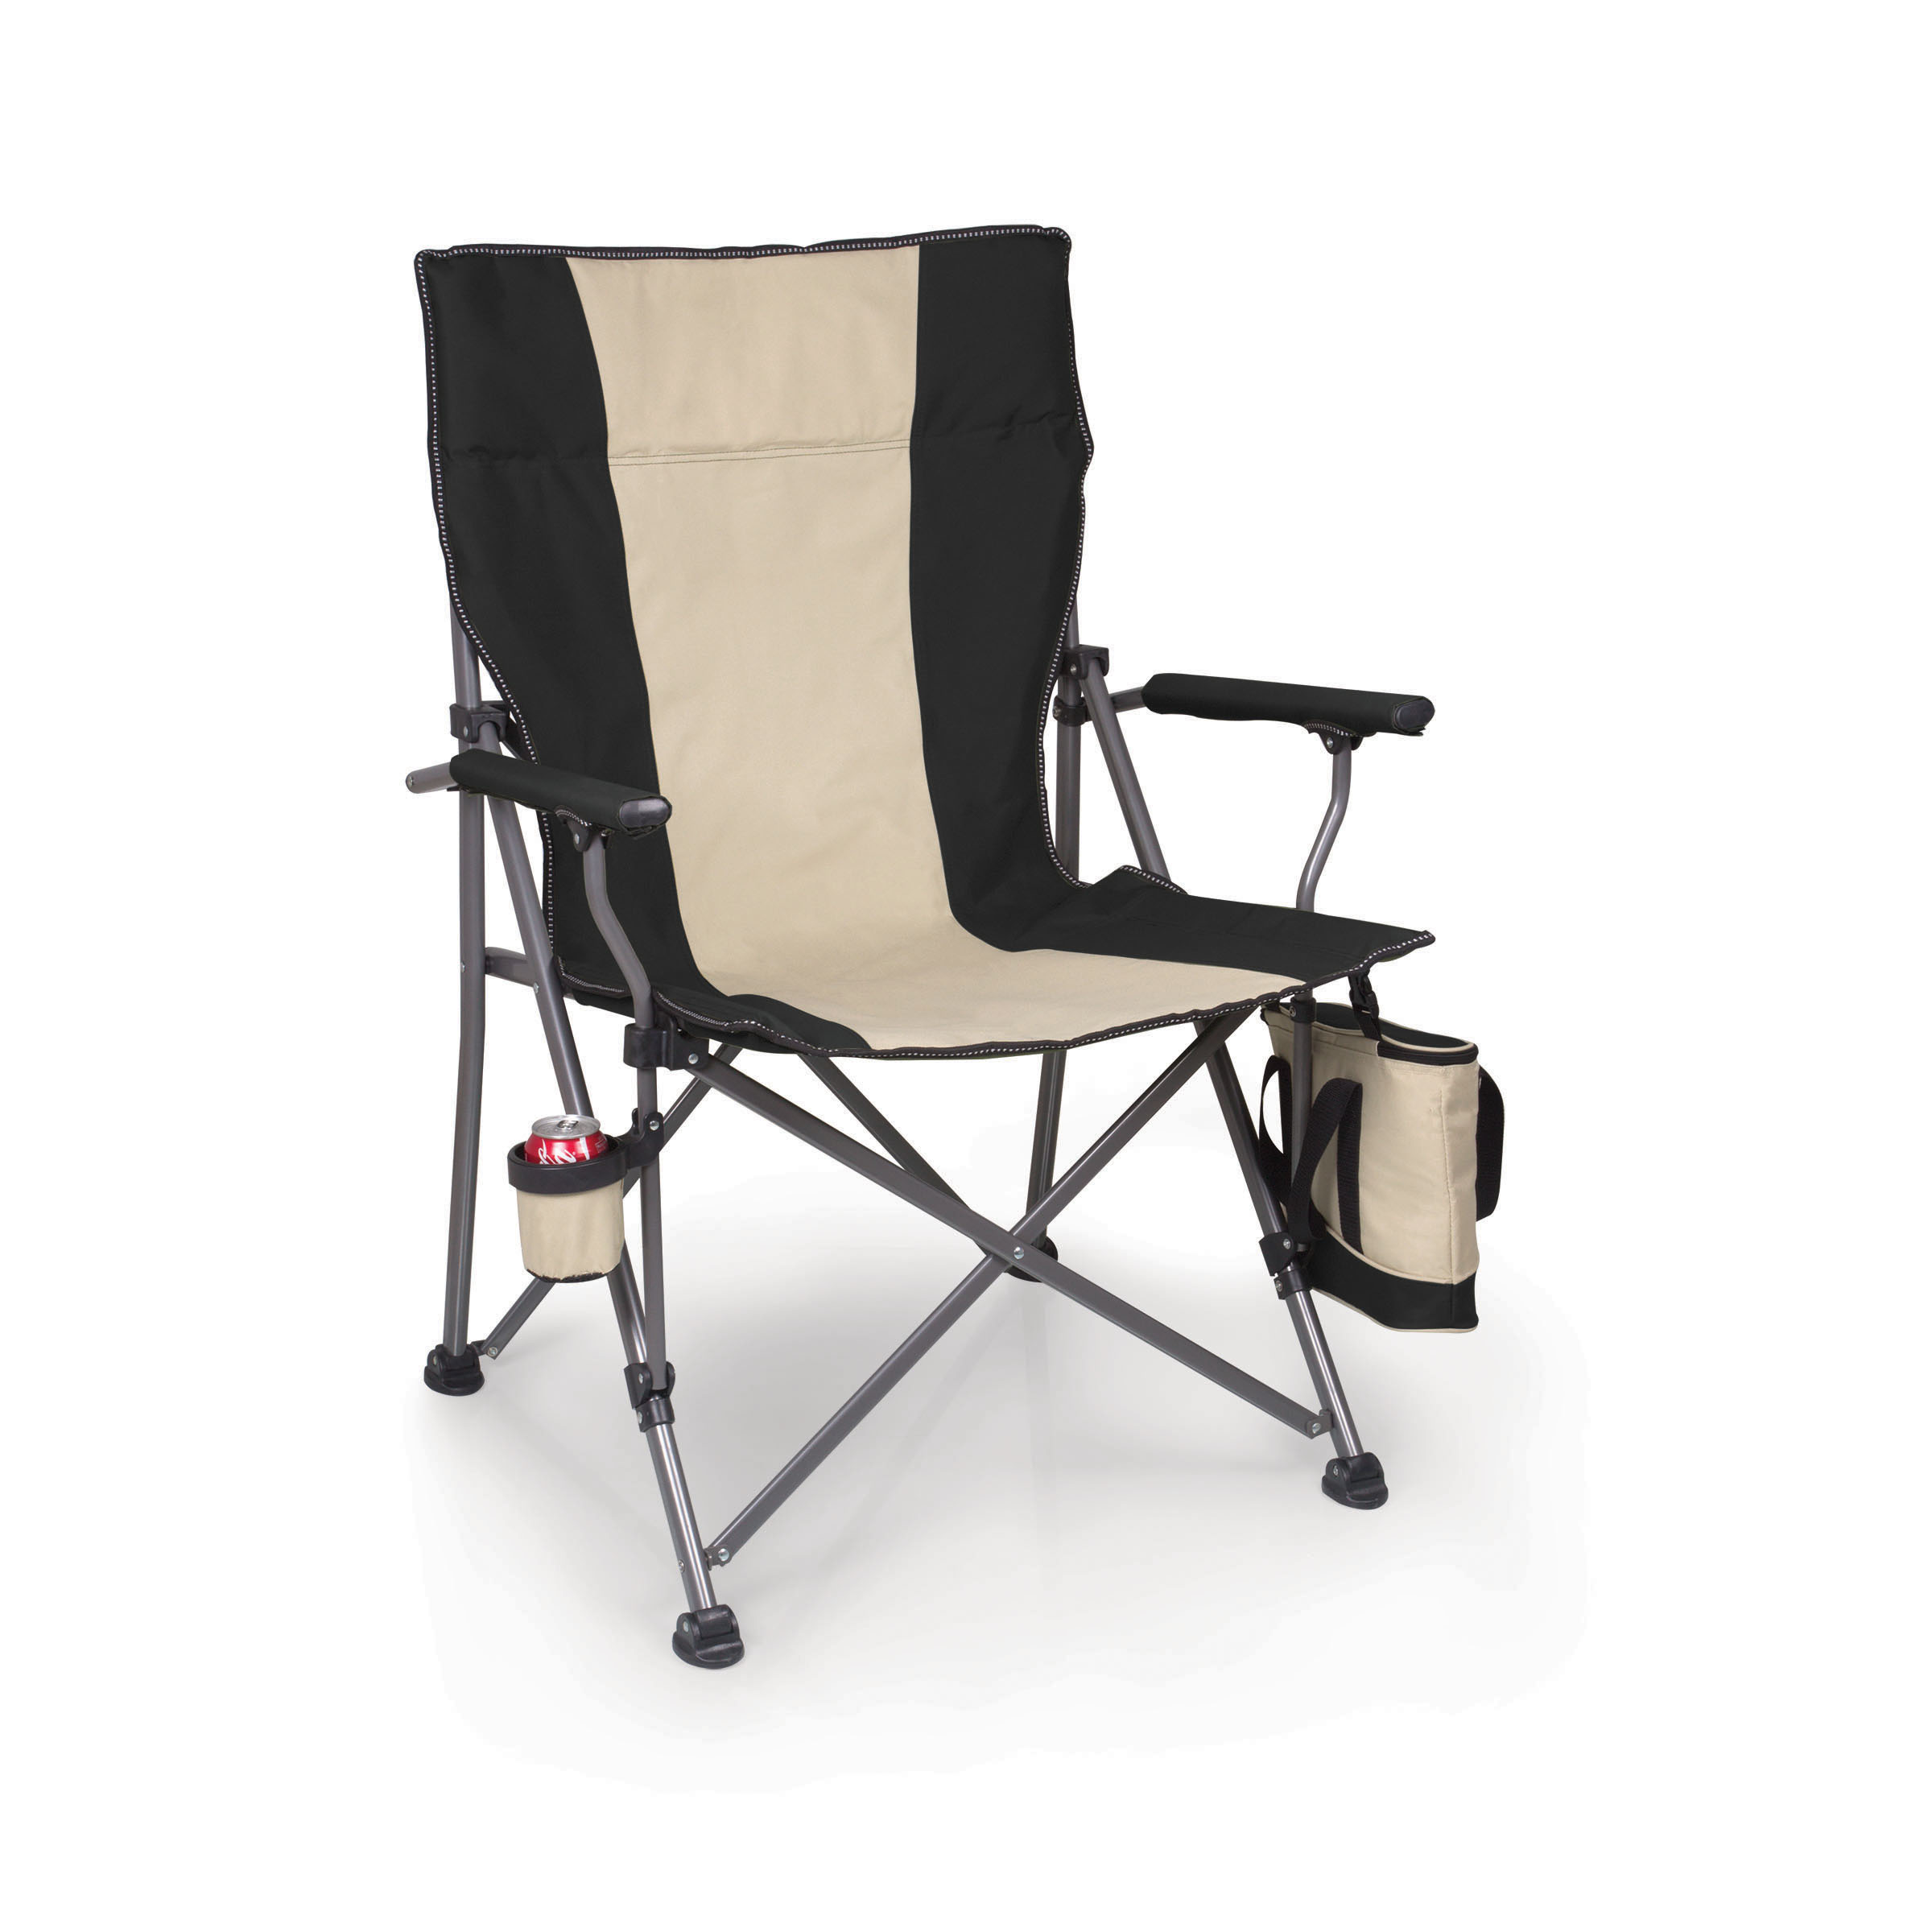 big folding chairs grey crushed velvet bedroom chair bear camp black picnic time family of brands